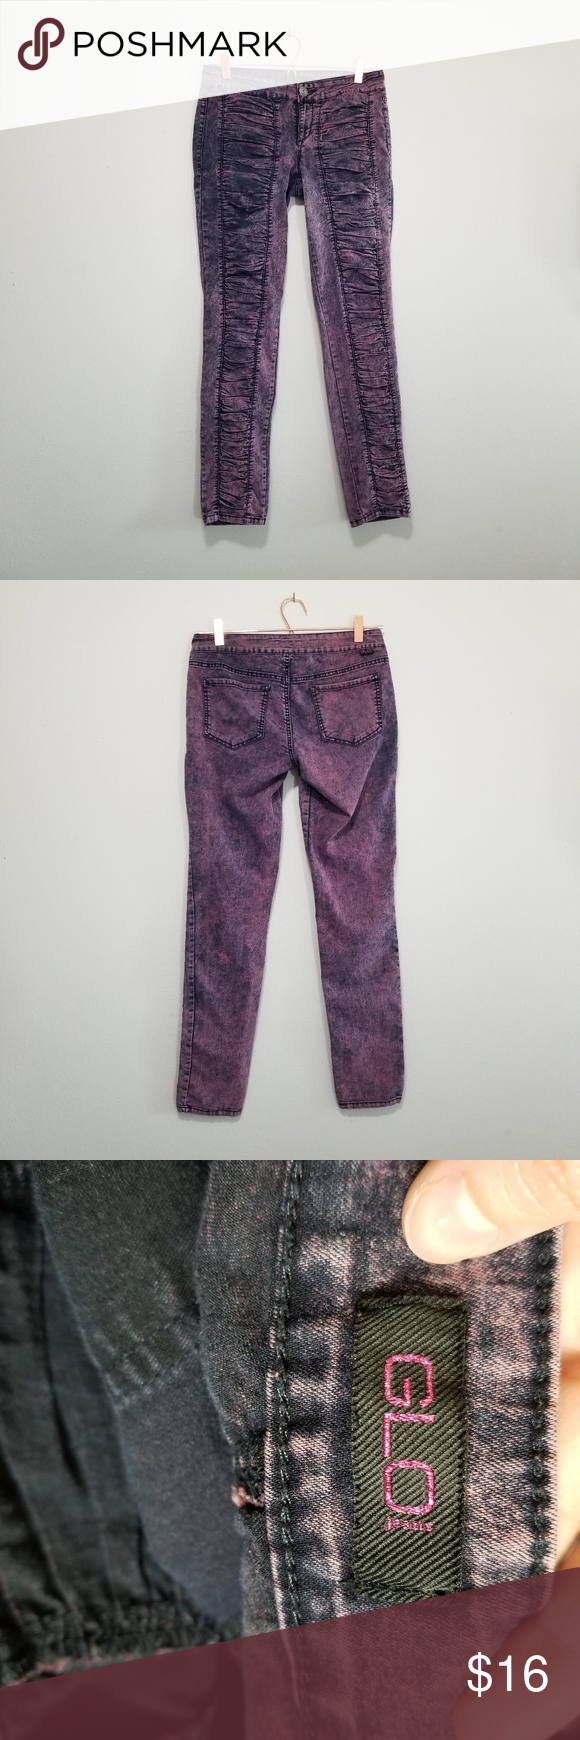 Glo washout pink Jeans (c) Glo Jean's  Washed out pink color  Bunched up ruffle …